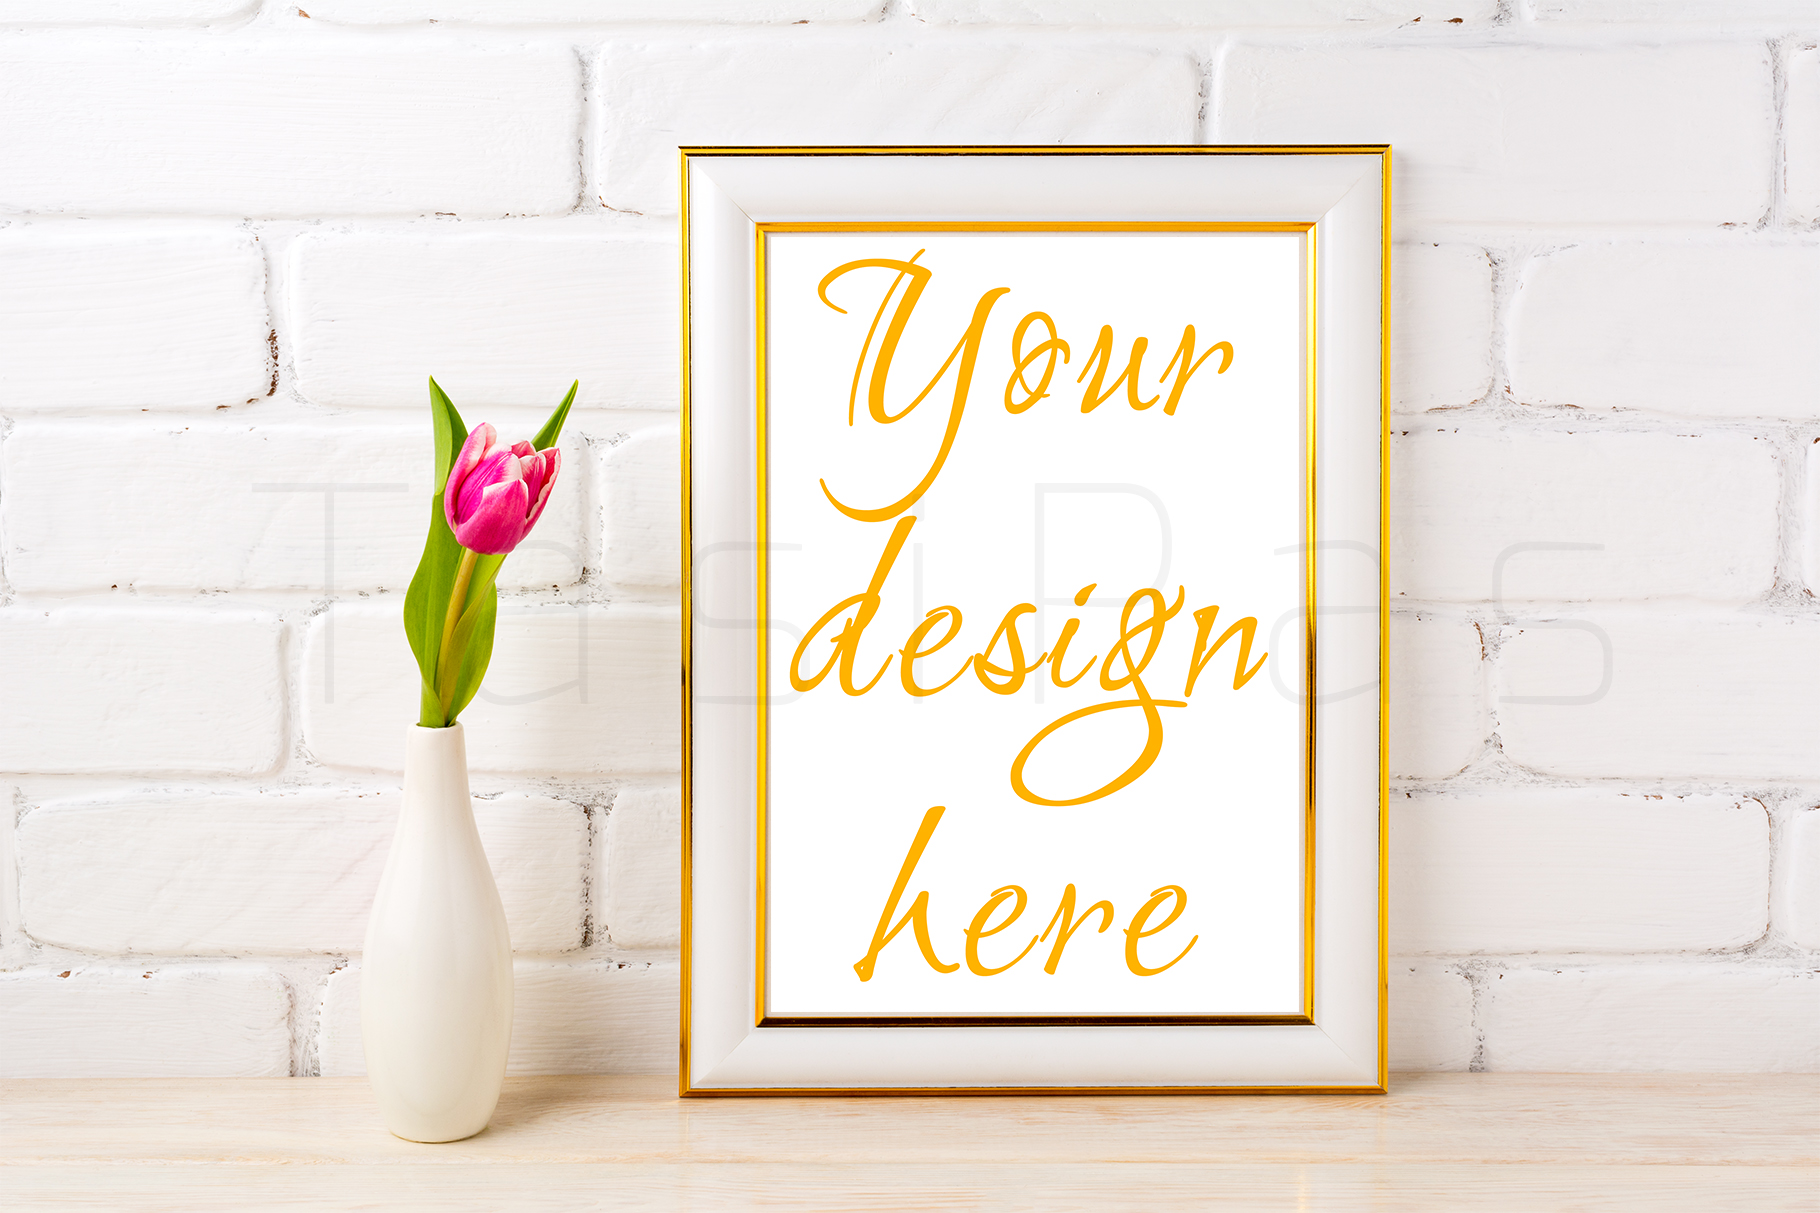 Gold decorated frame mockup with rich magenta pink tulip in elegant vase near white painted brick wall. example image 3